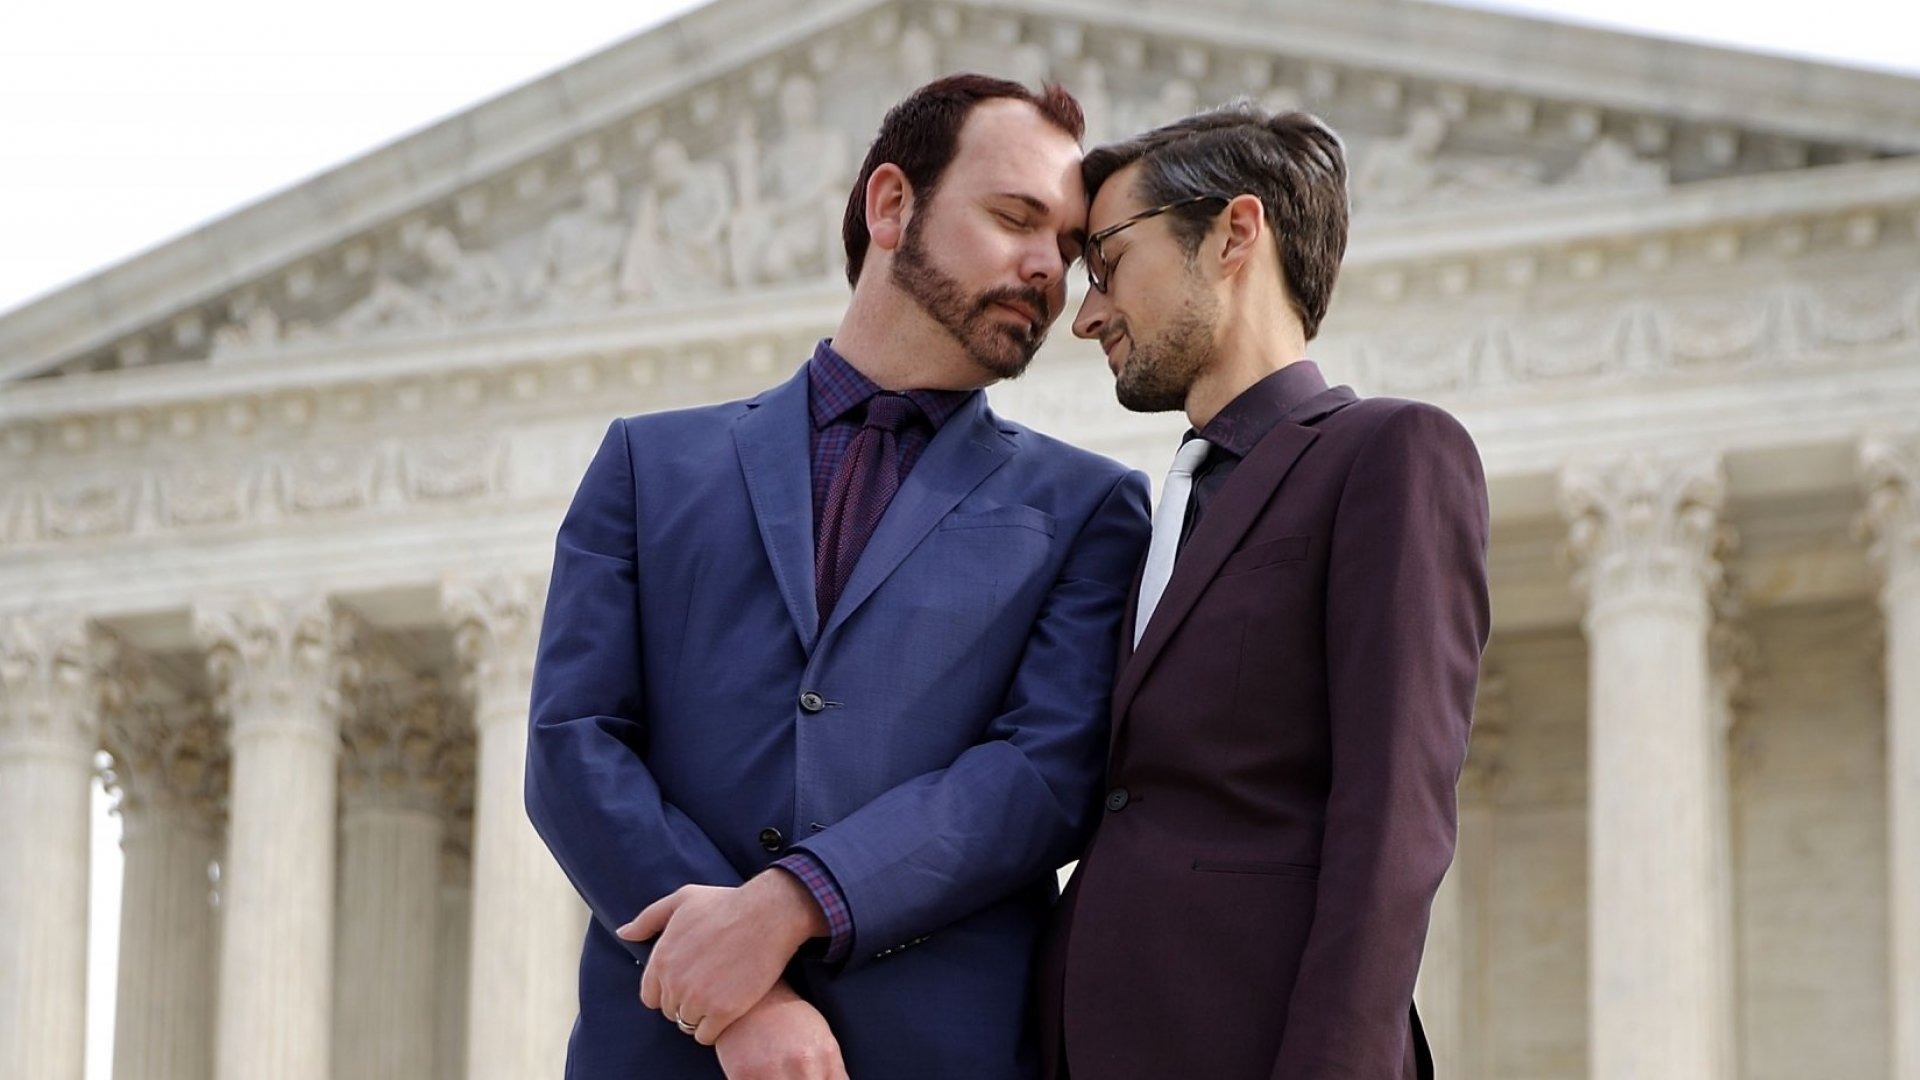 David Mullins (L) and Charlie Craig wait to speak to journalists after the U.S. Supreme Court heard the case <em>Masterpiece Cakeshop</em> v. <em>Colorado Civil Rights Commission</em> on December 5, 2017, in Washington, D.C. Craig and Mullins filed a complaint with the commission in 2012 after conservative Christian baker Jack Phillips refused to sell them a wedding cake for their same-sex ceremony.